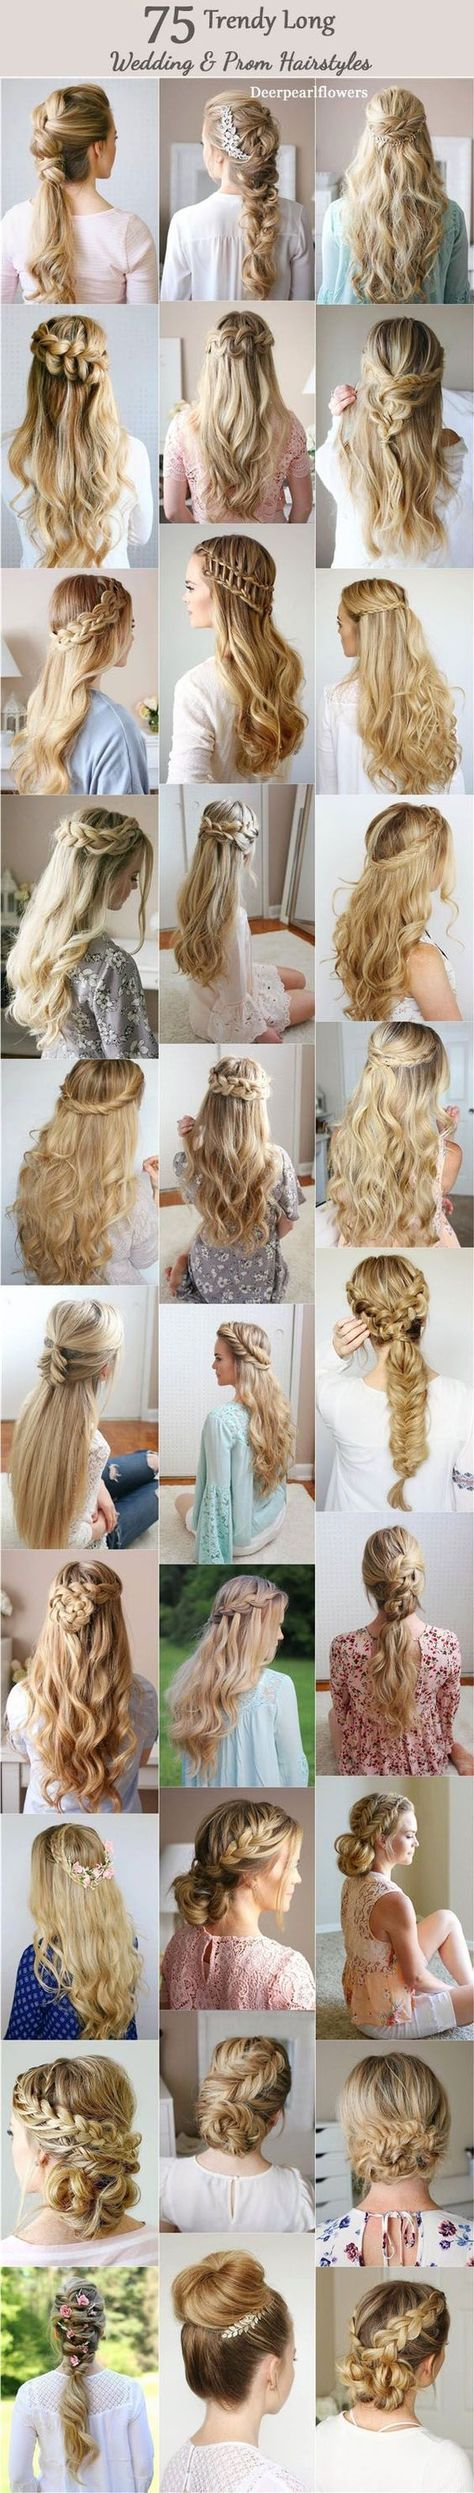 trendy long wedding u prom hairstyles to try in usnii